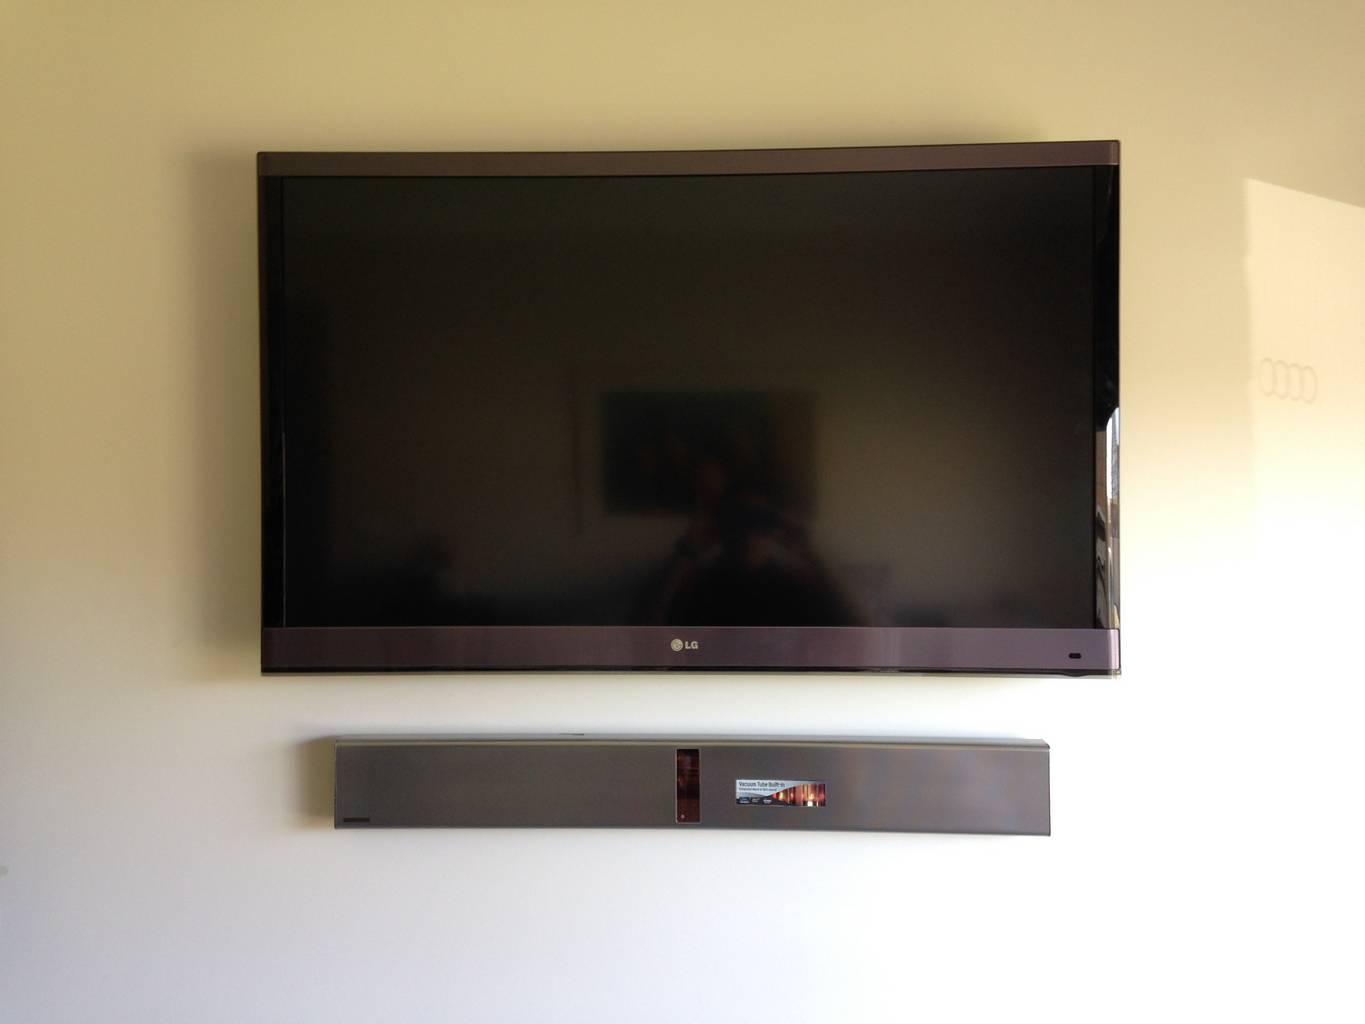 Tv Installation Melbourne Tv Wall Mount And Sound Bar Jim 39s Antennas Ballarat